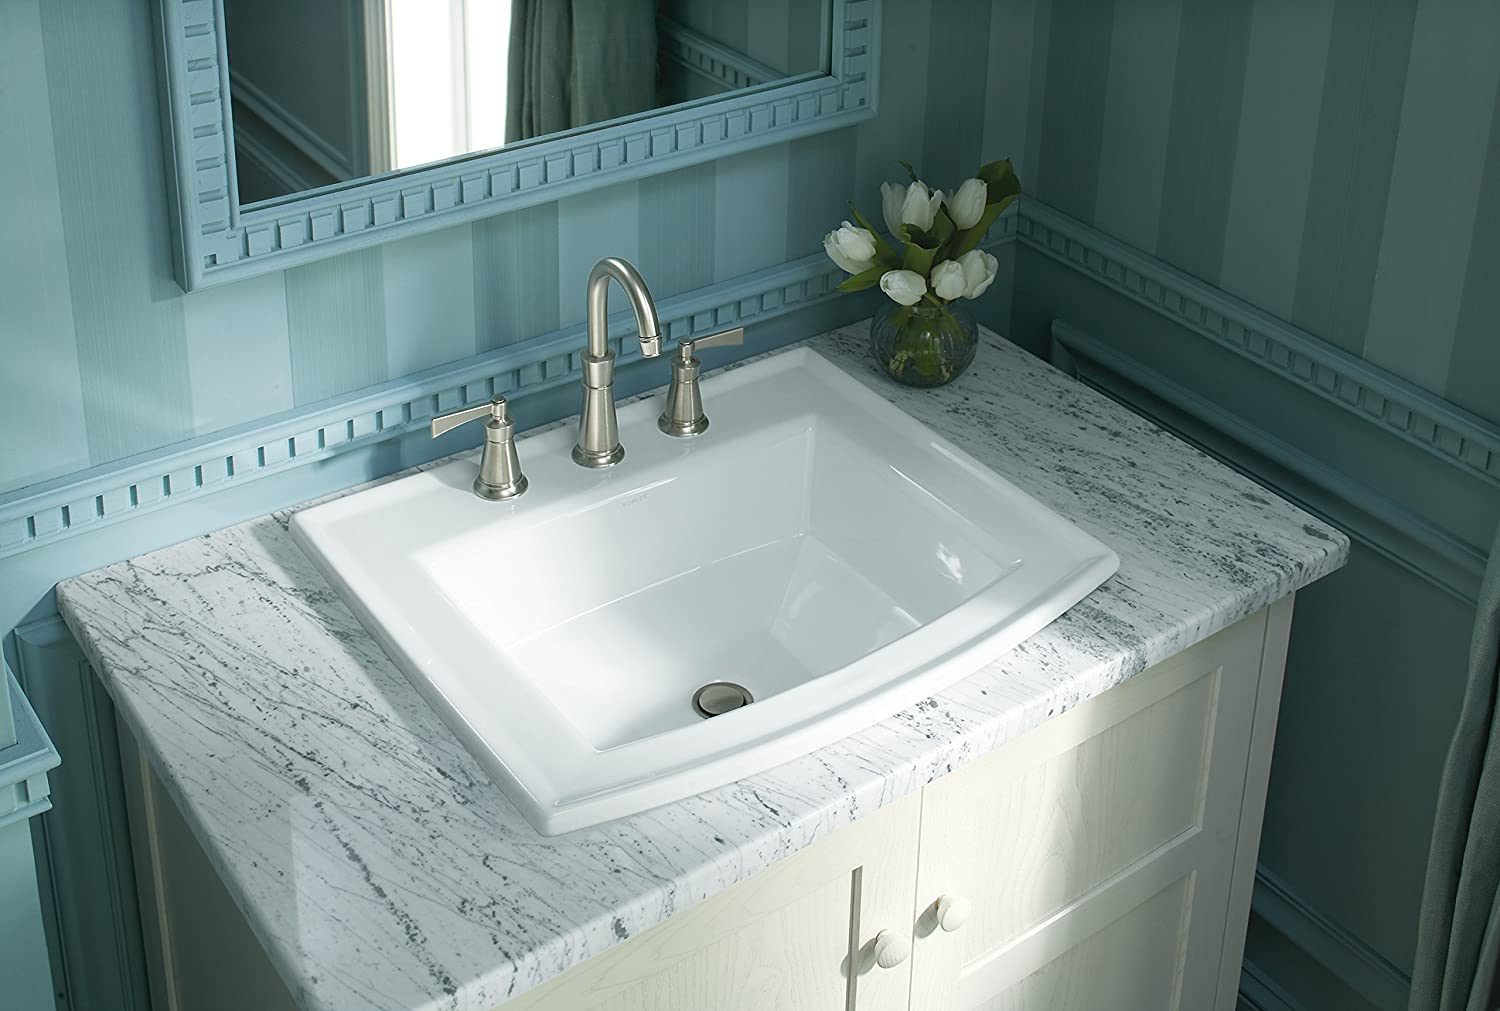 Kohler K-2356-4-0 Archer Bathroom Sink, White - - Amazon.com